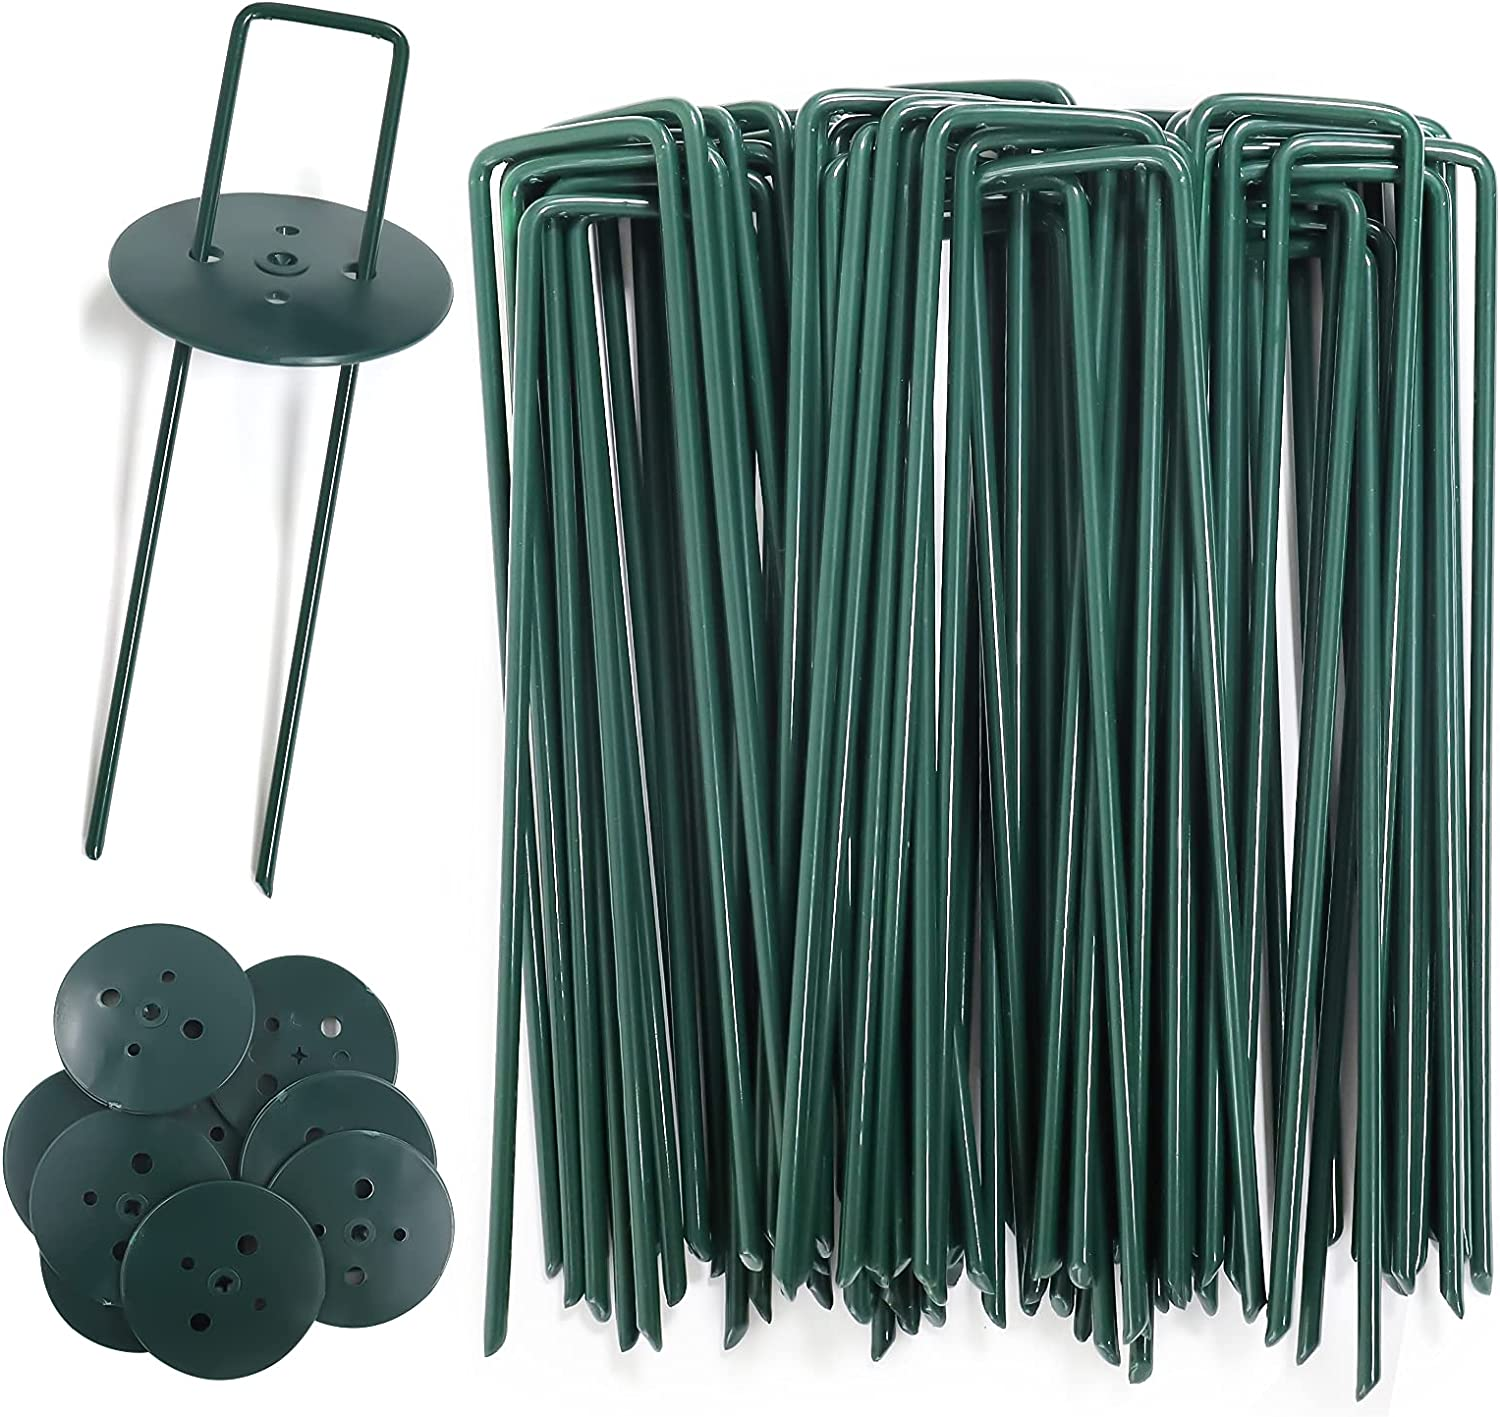 AGAKY Garden Securing Pegs, 45pcs Green Garden Steel U-Shaped Galvanized Netting Pegs with 10 Buffer Washer, Artificial Metal Grass Pegs for Weed Barrier Membrane, Weed Fabric, Weed Film, Garden Net